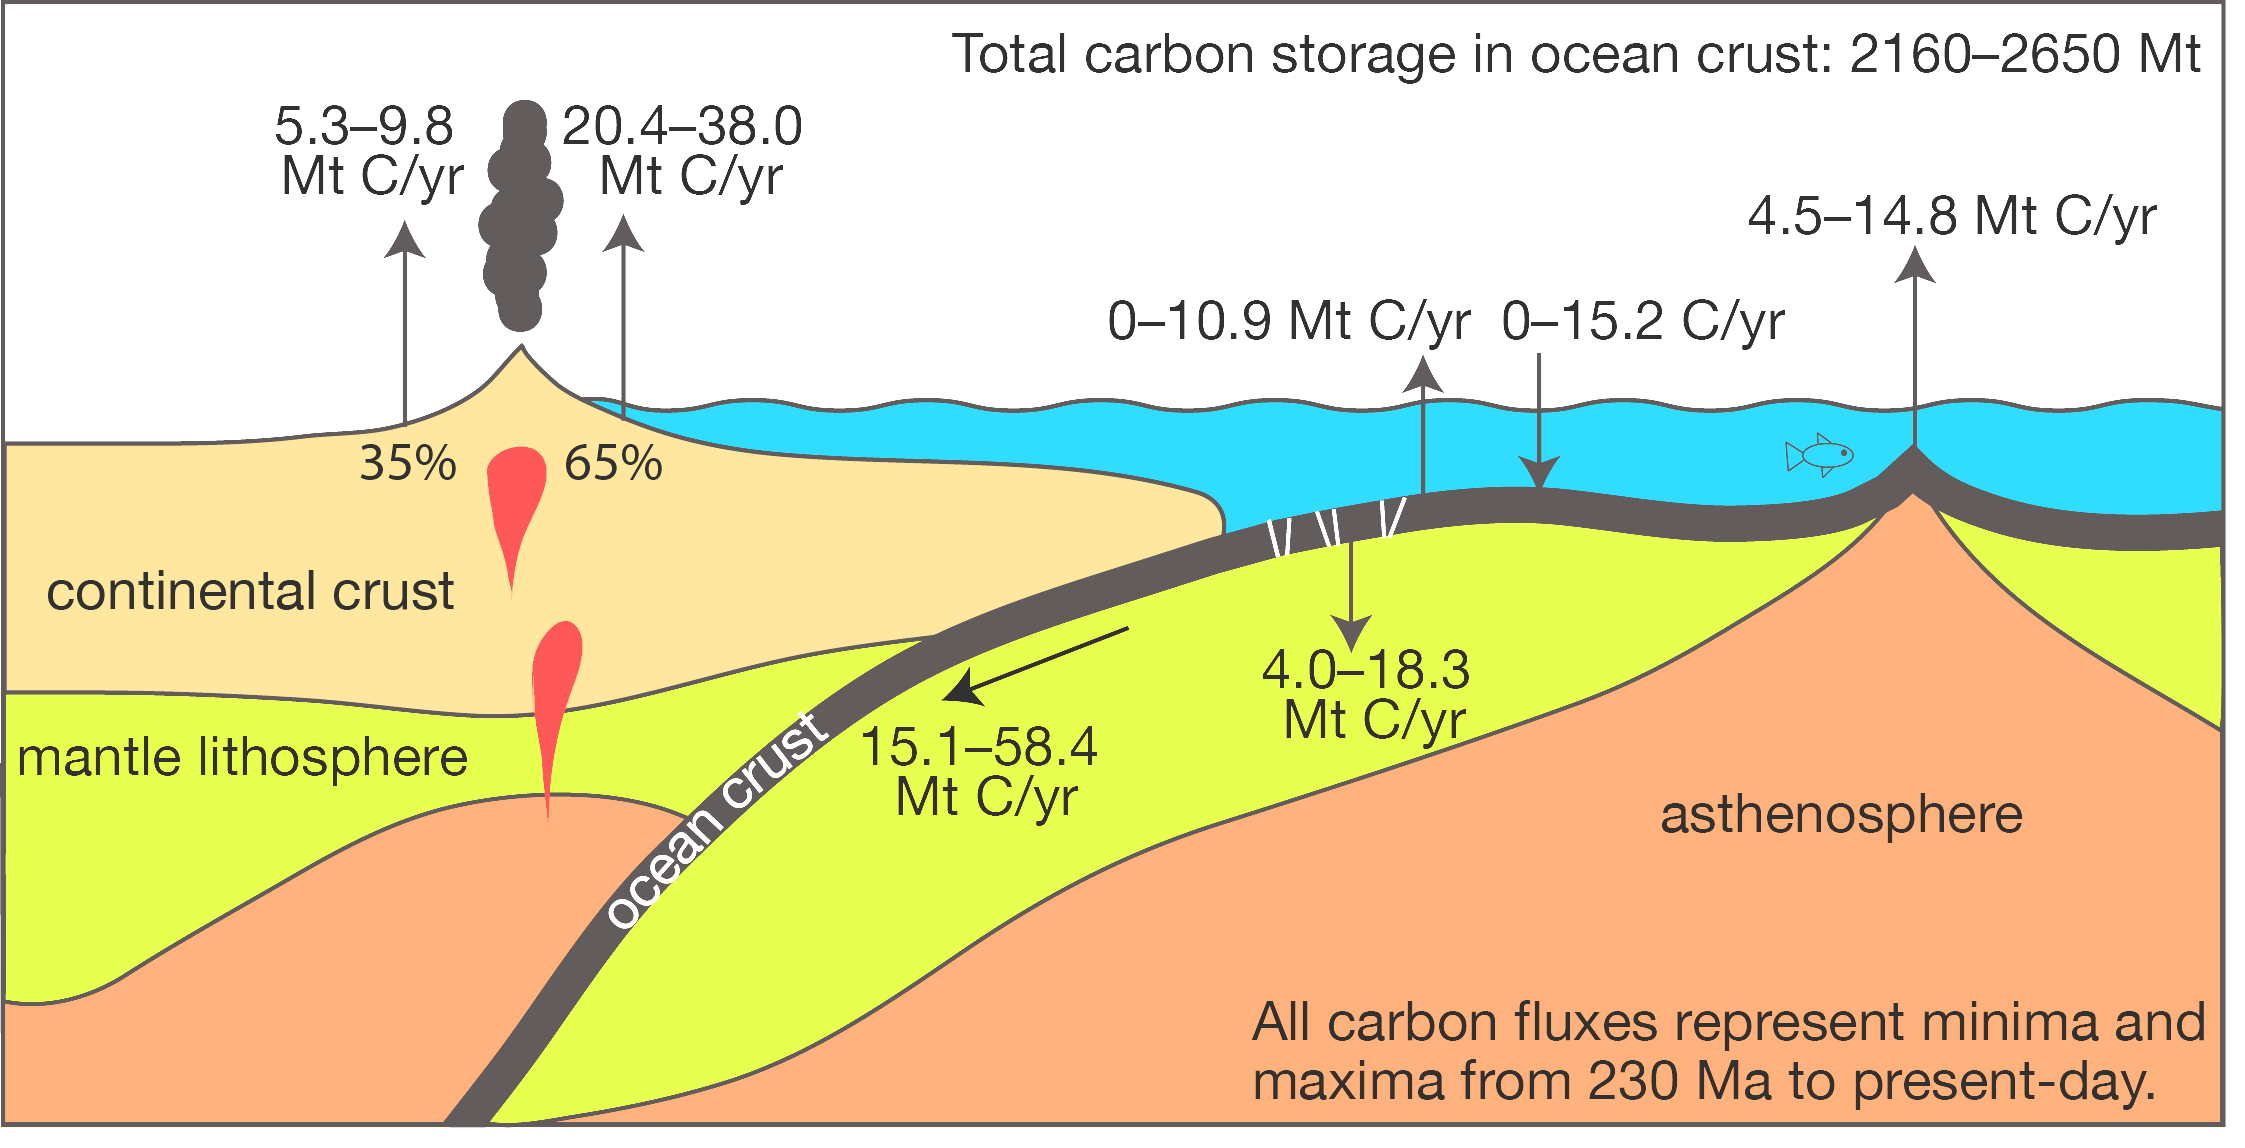 Media Earthbyte Four Diagrams A B C And D Representing Stages Of Stroke Previously Unknown Connection Between Geological Atmospheric Carbon Dioxide Cycles The Fluctuating Capacity Ocean Crust To Store